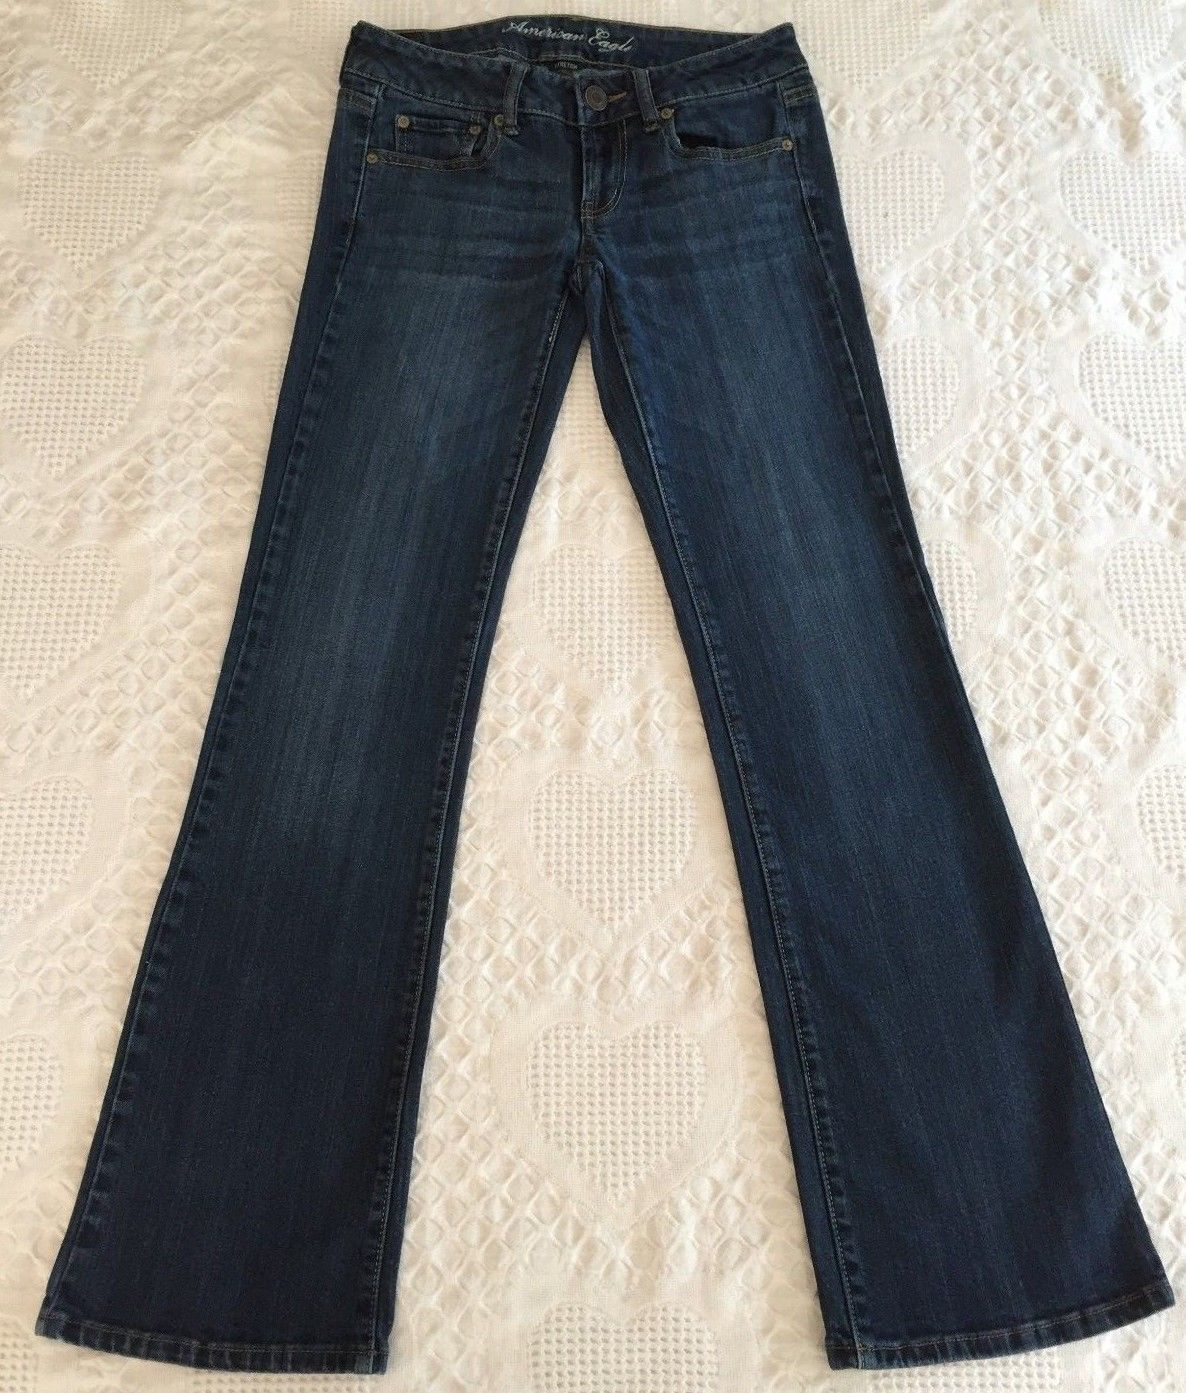 45cda1e6b2a857 AMERICAN EAGLE Women's Distressed Favorite Boyfriend Stretch Jeans Size 2  29x32